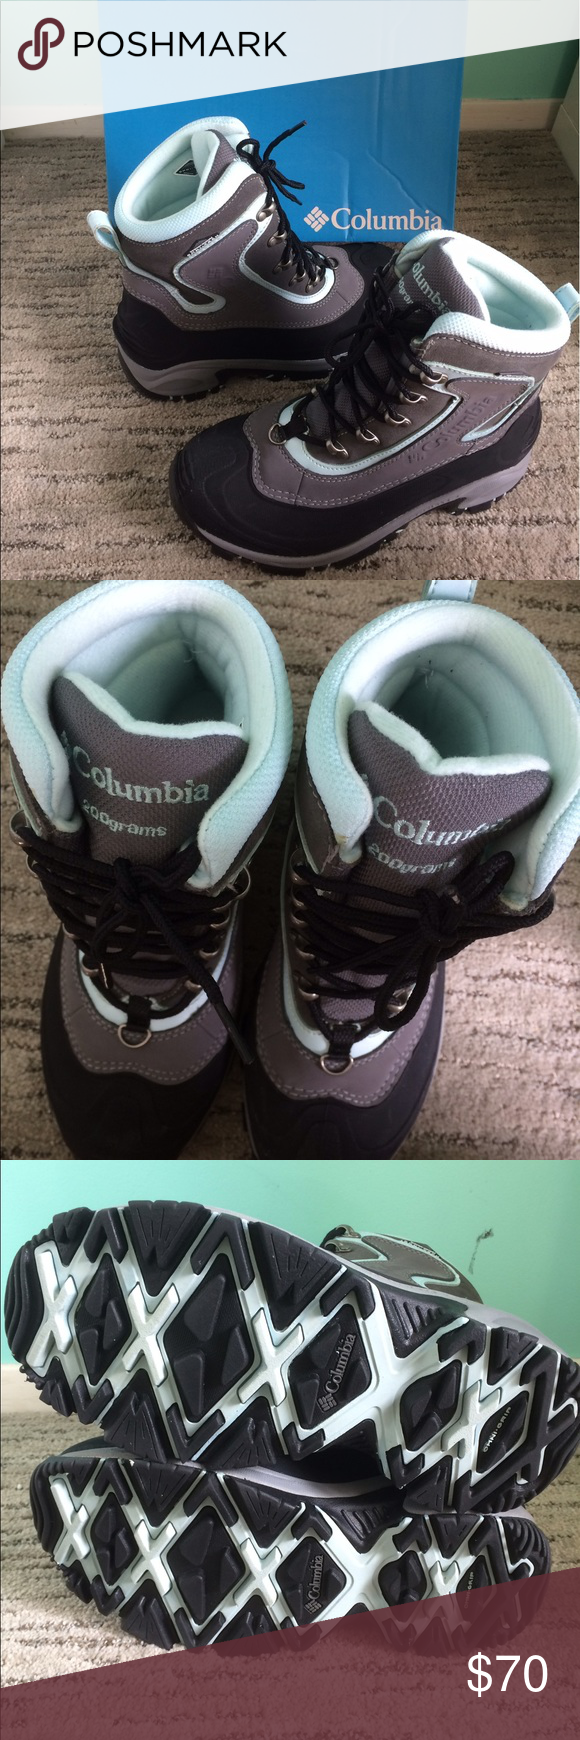 Columbia Whitefield Omni Tech Boots Size 8.5 Columbia